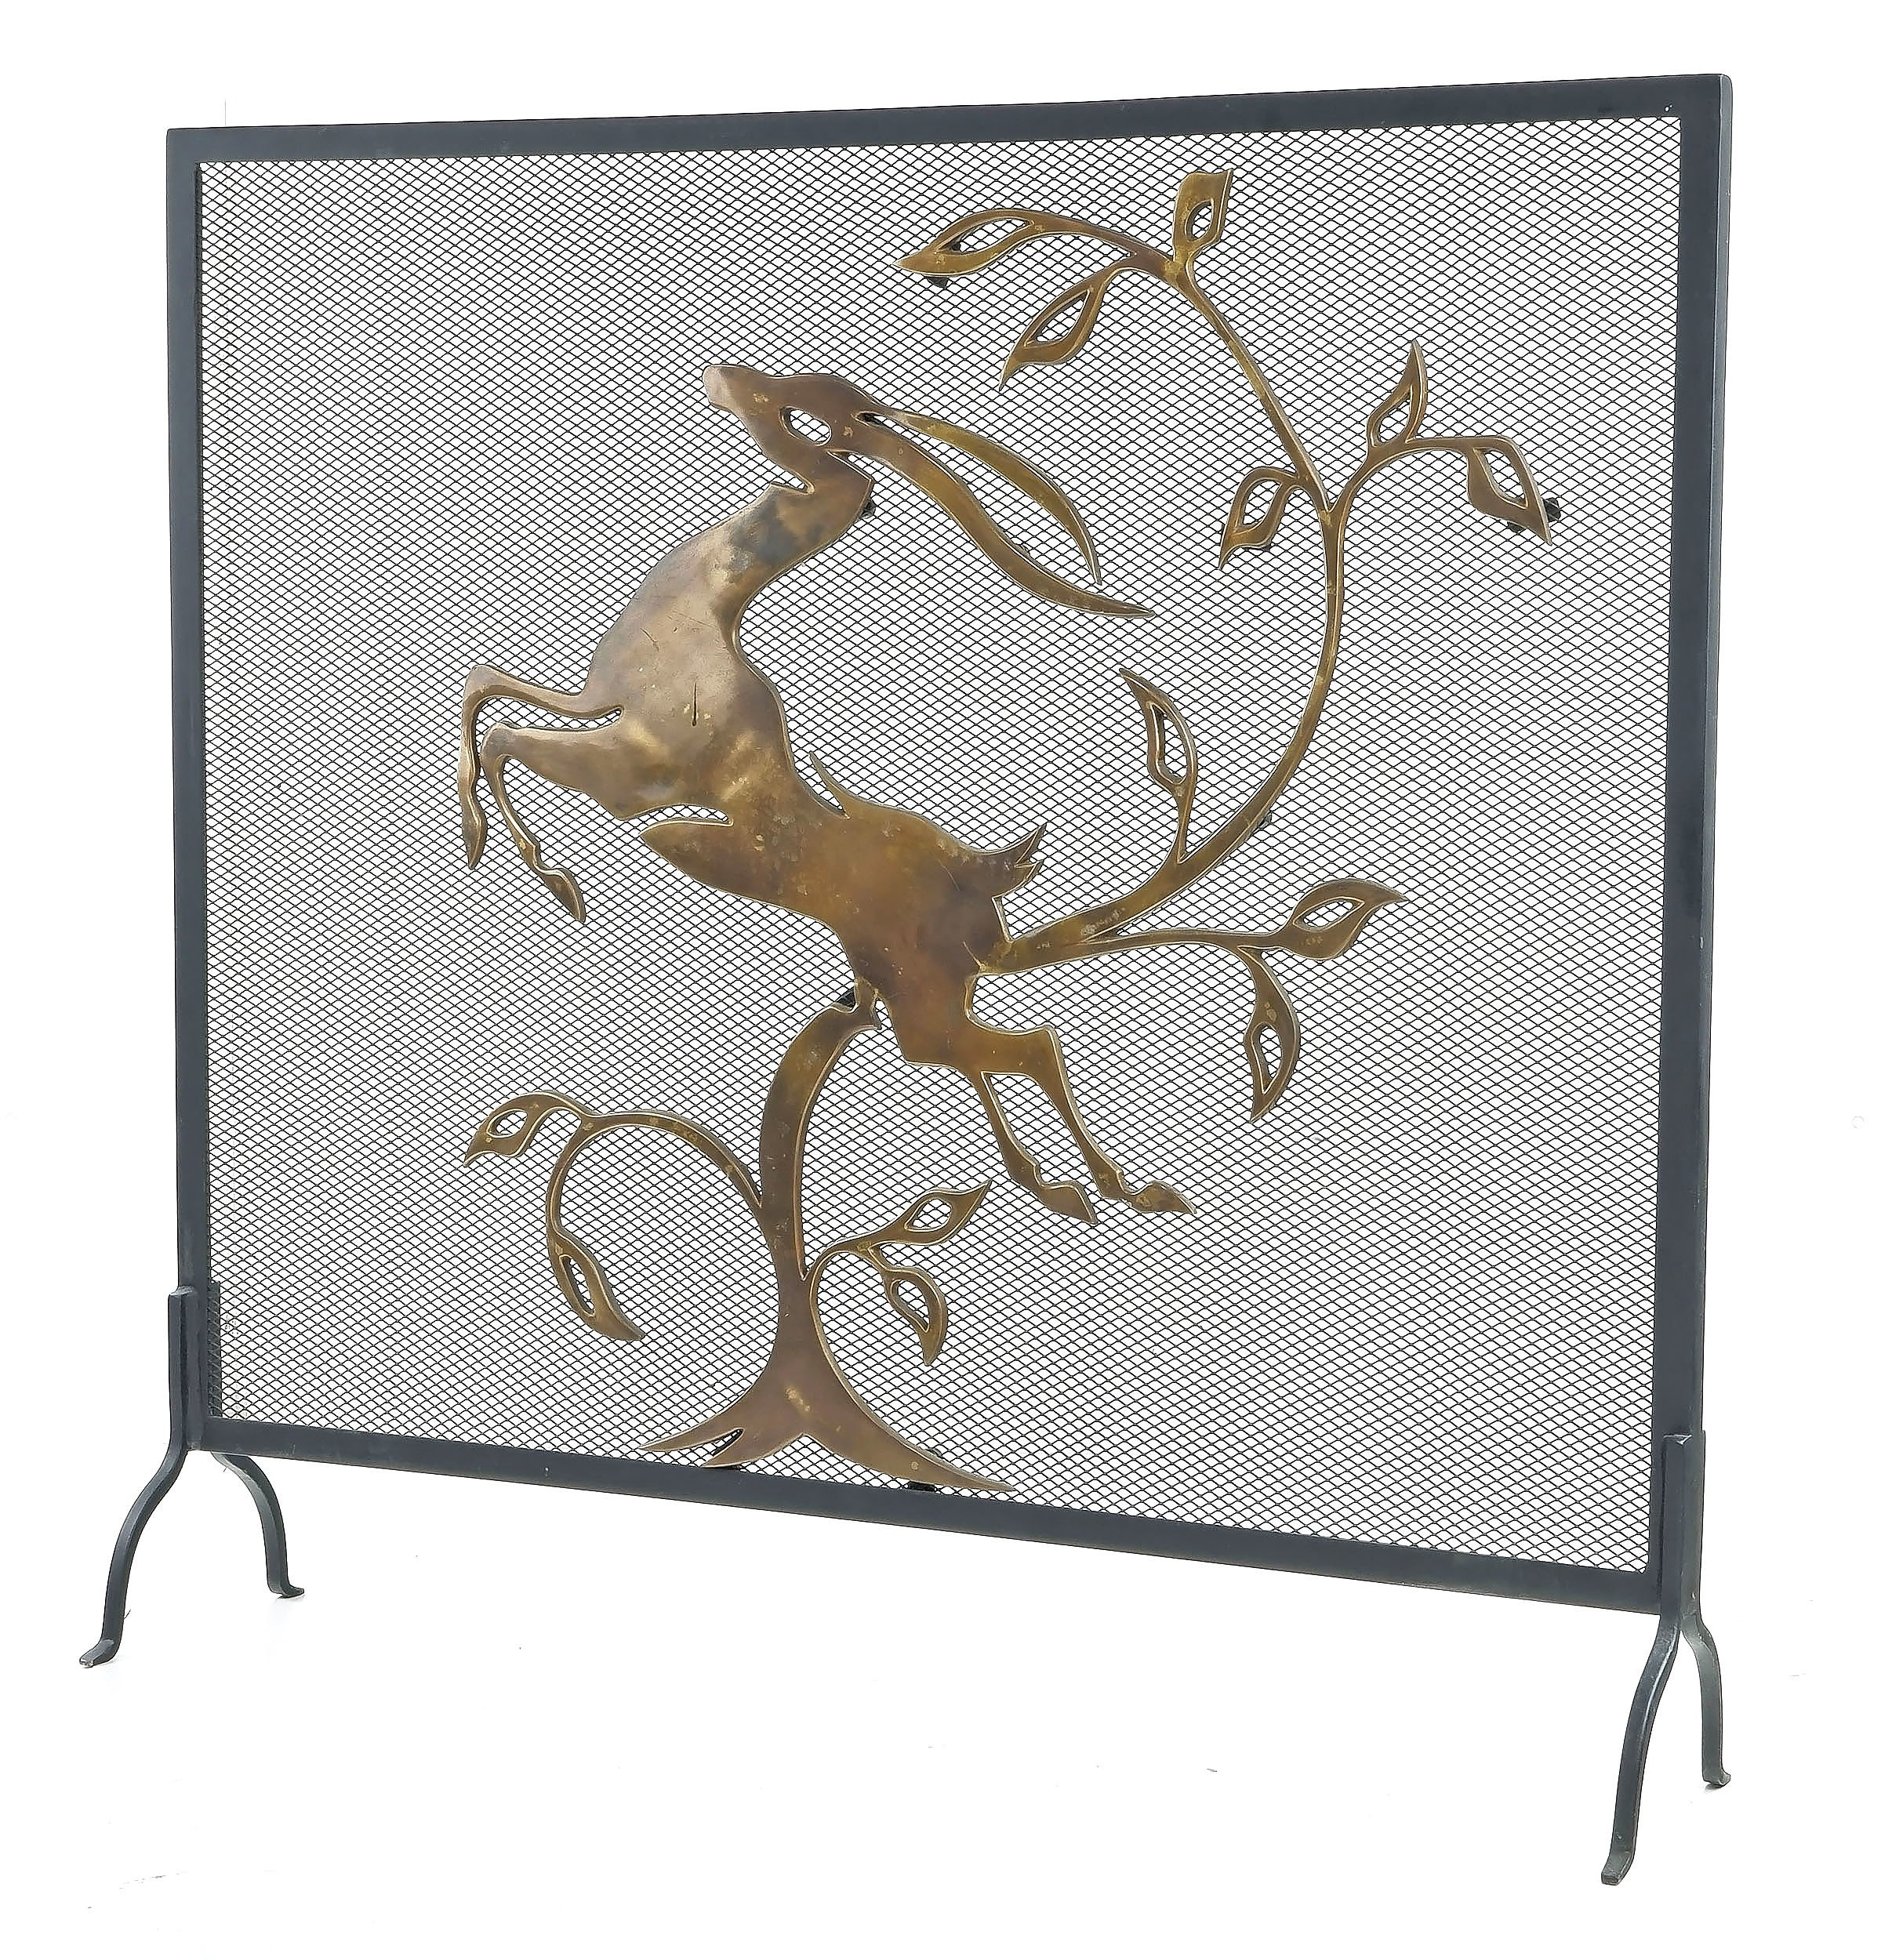 'Art Deco Style Fire Screen with Cast Brass Leaping Gazelle'